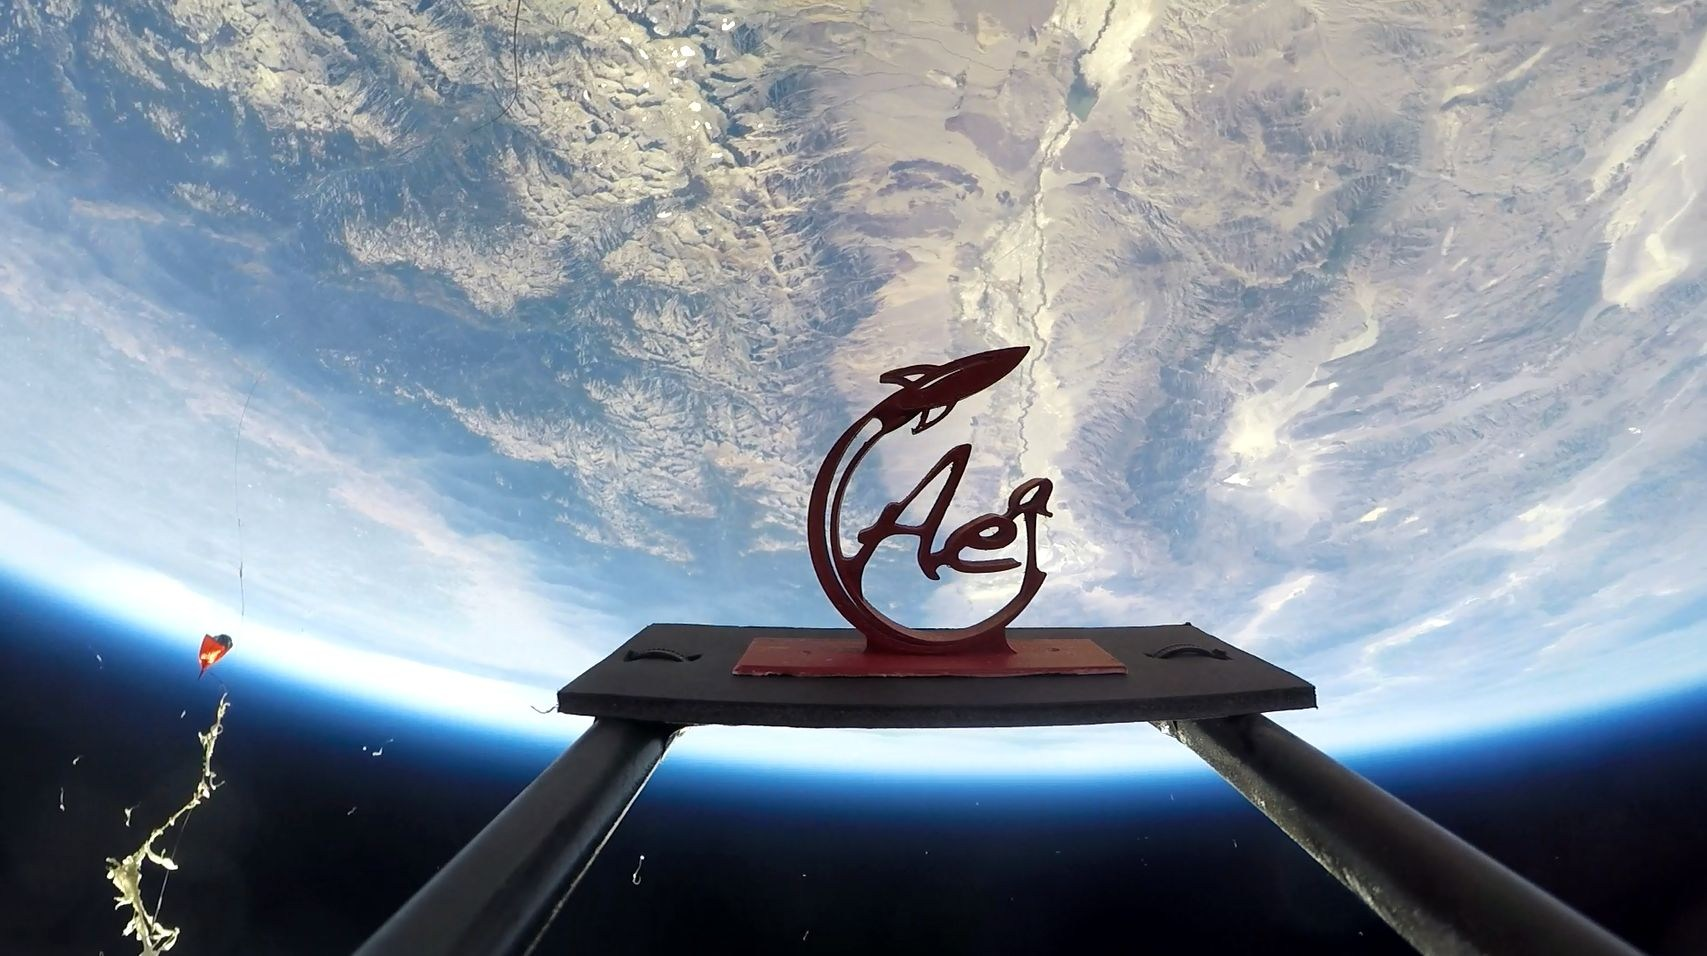 logo in space